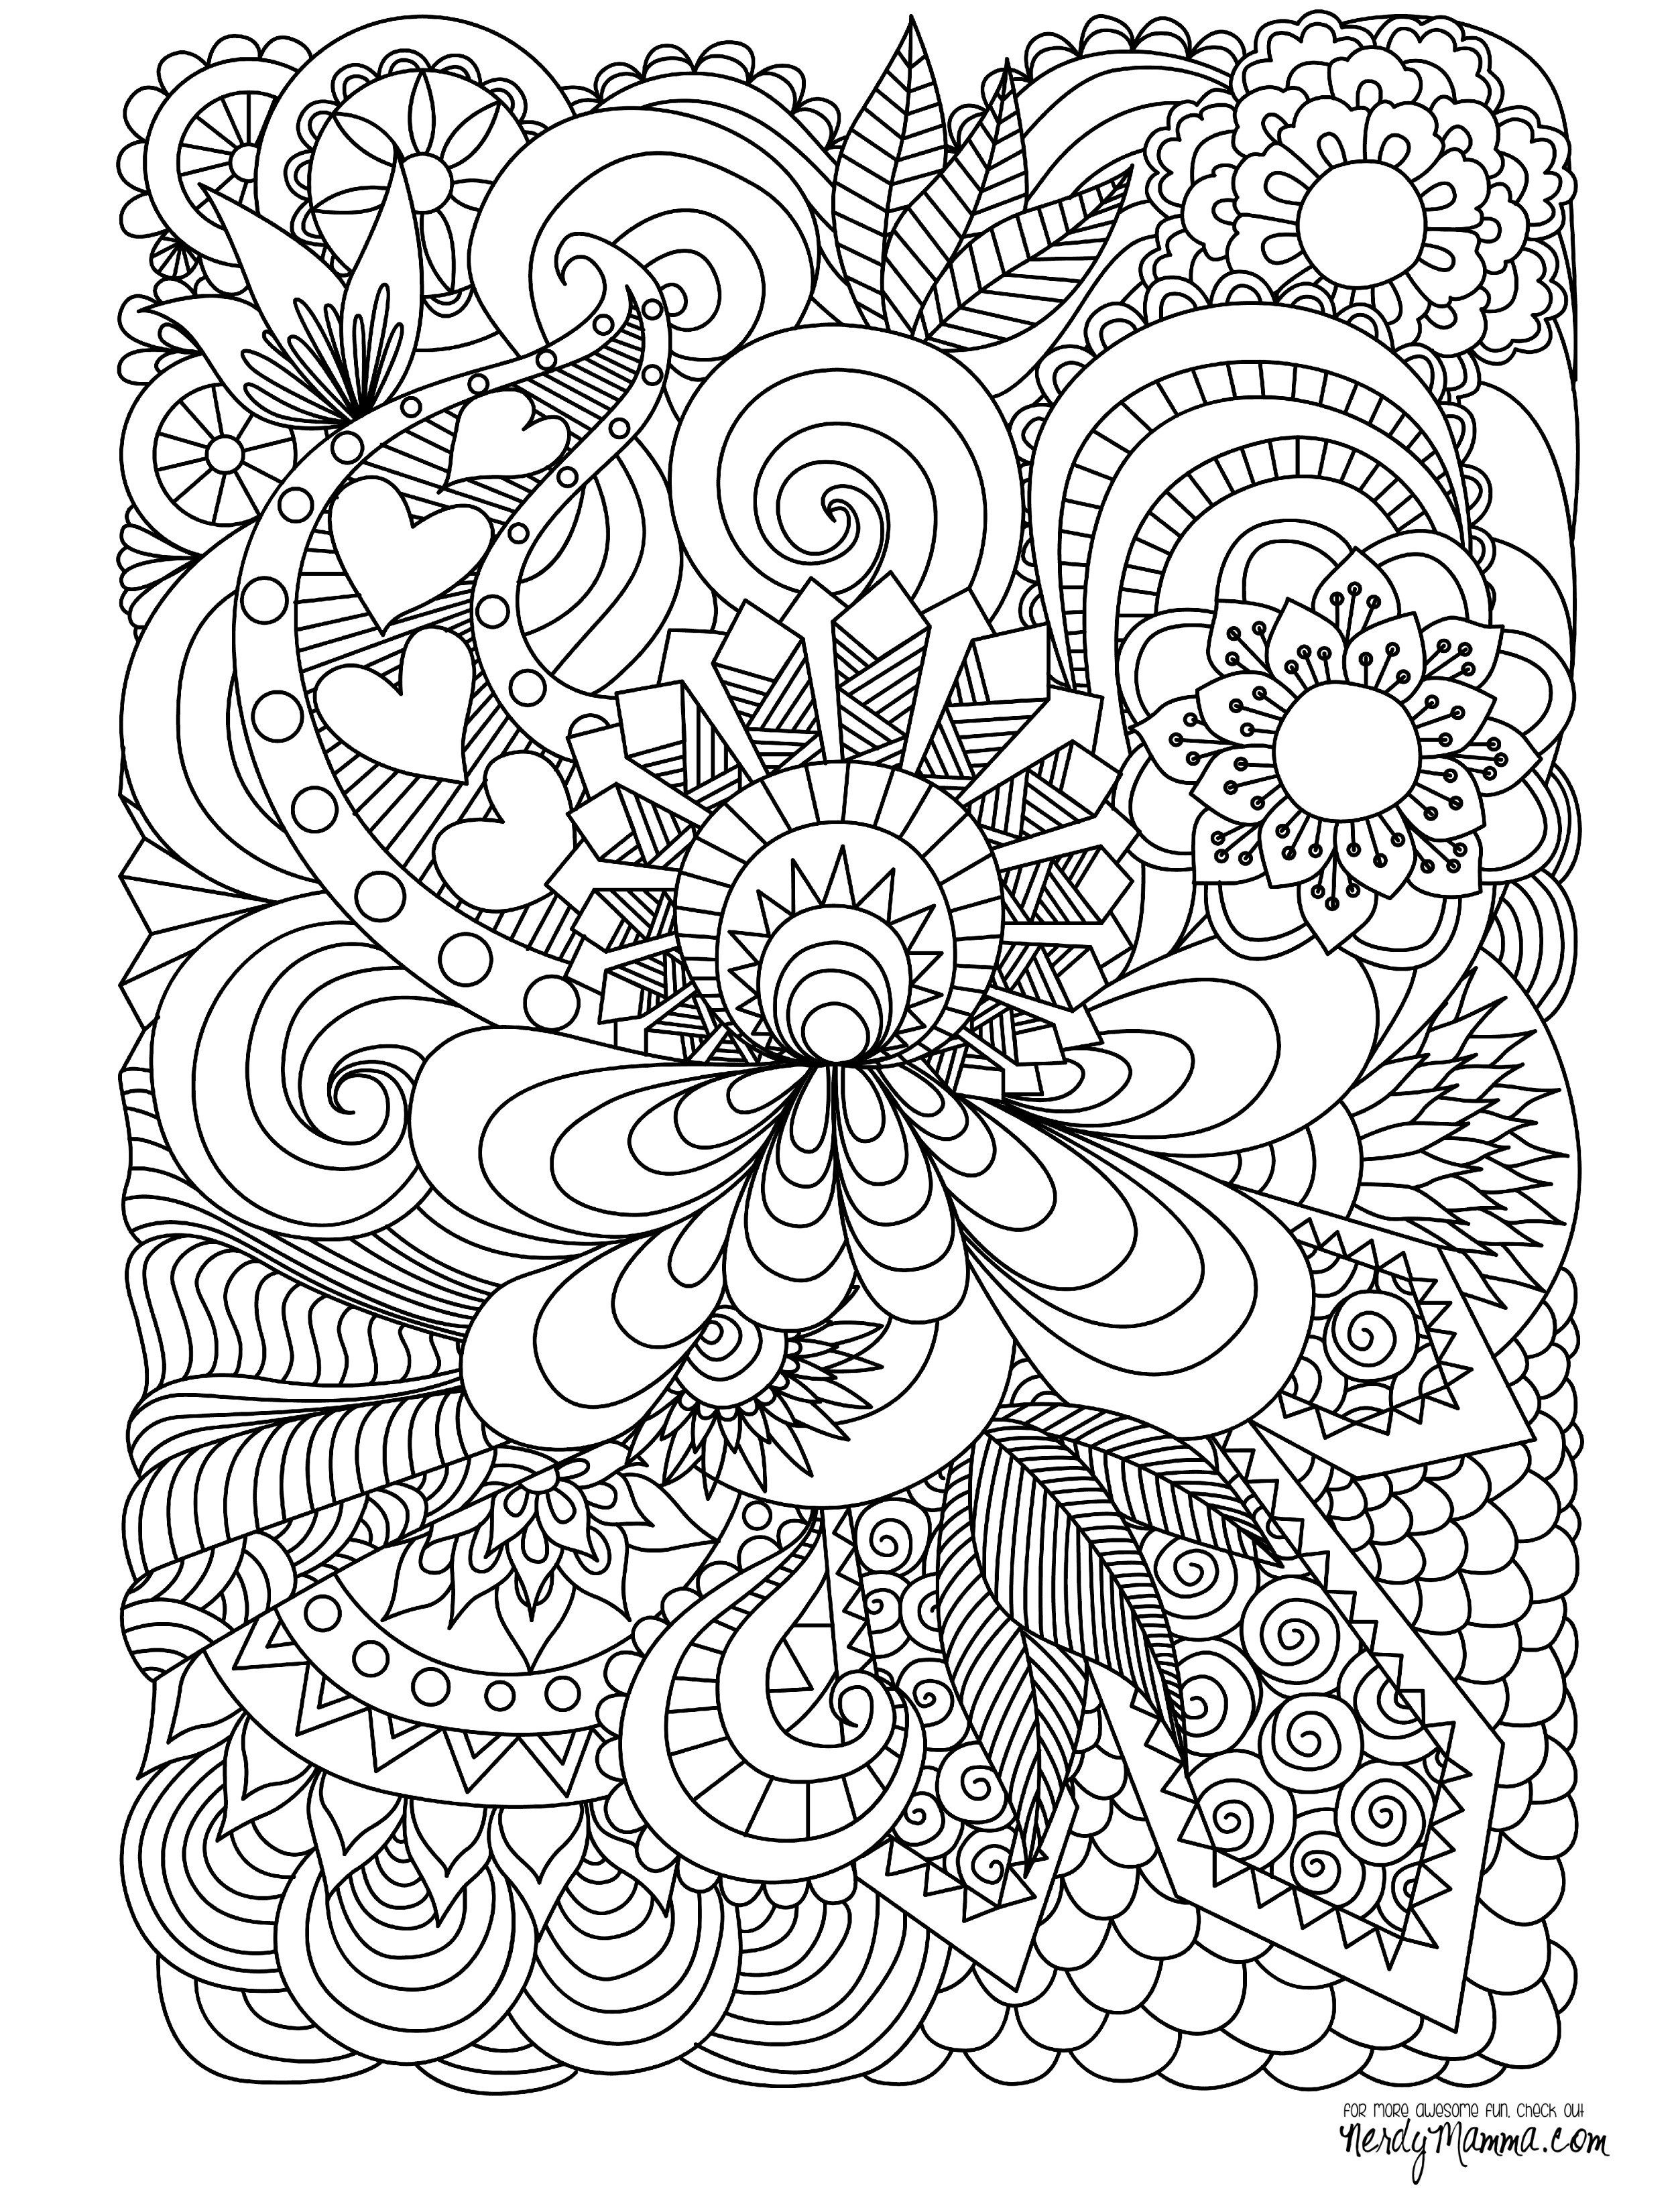 Free coloring pages for adults abstract - 11 Free Printable Adult Coloring Pages